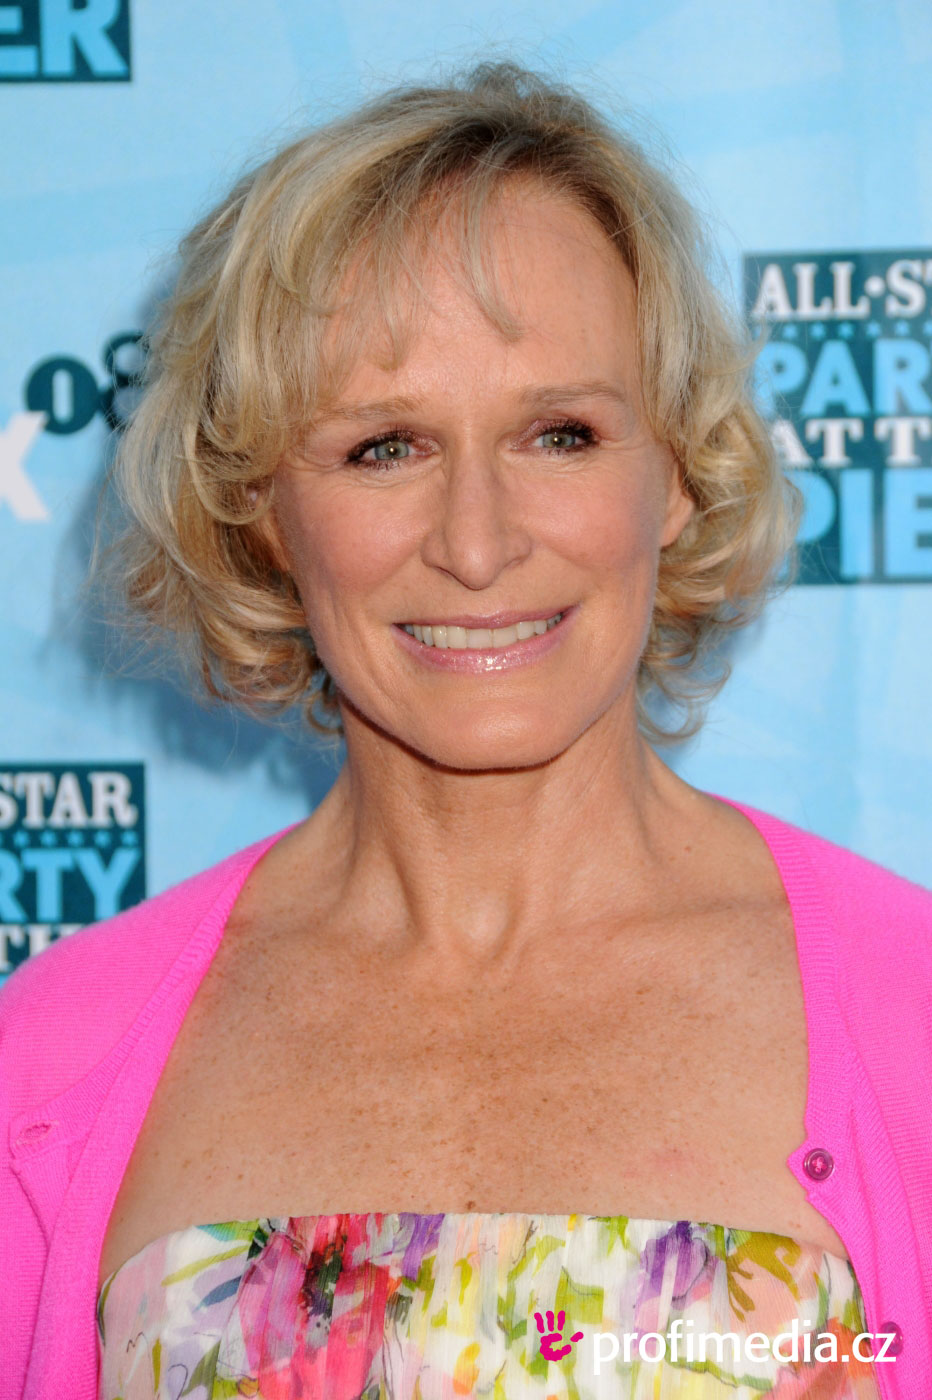 prom hairstyle - glenn close - glenn close